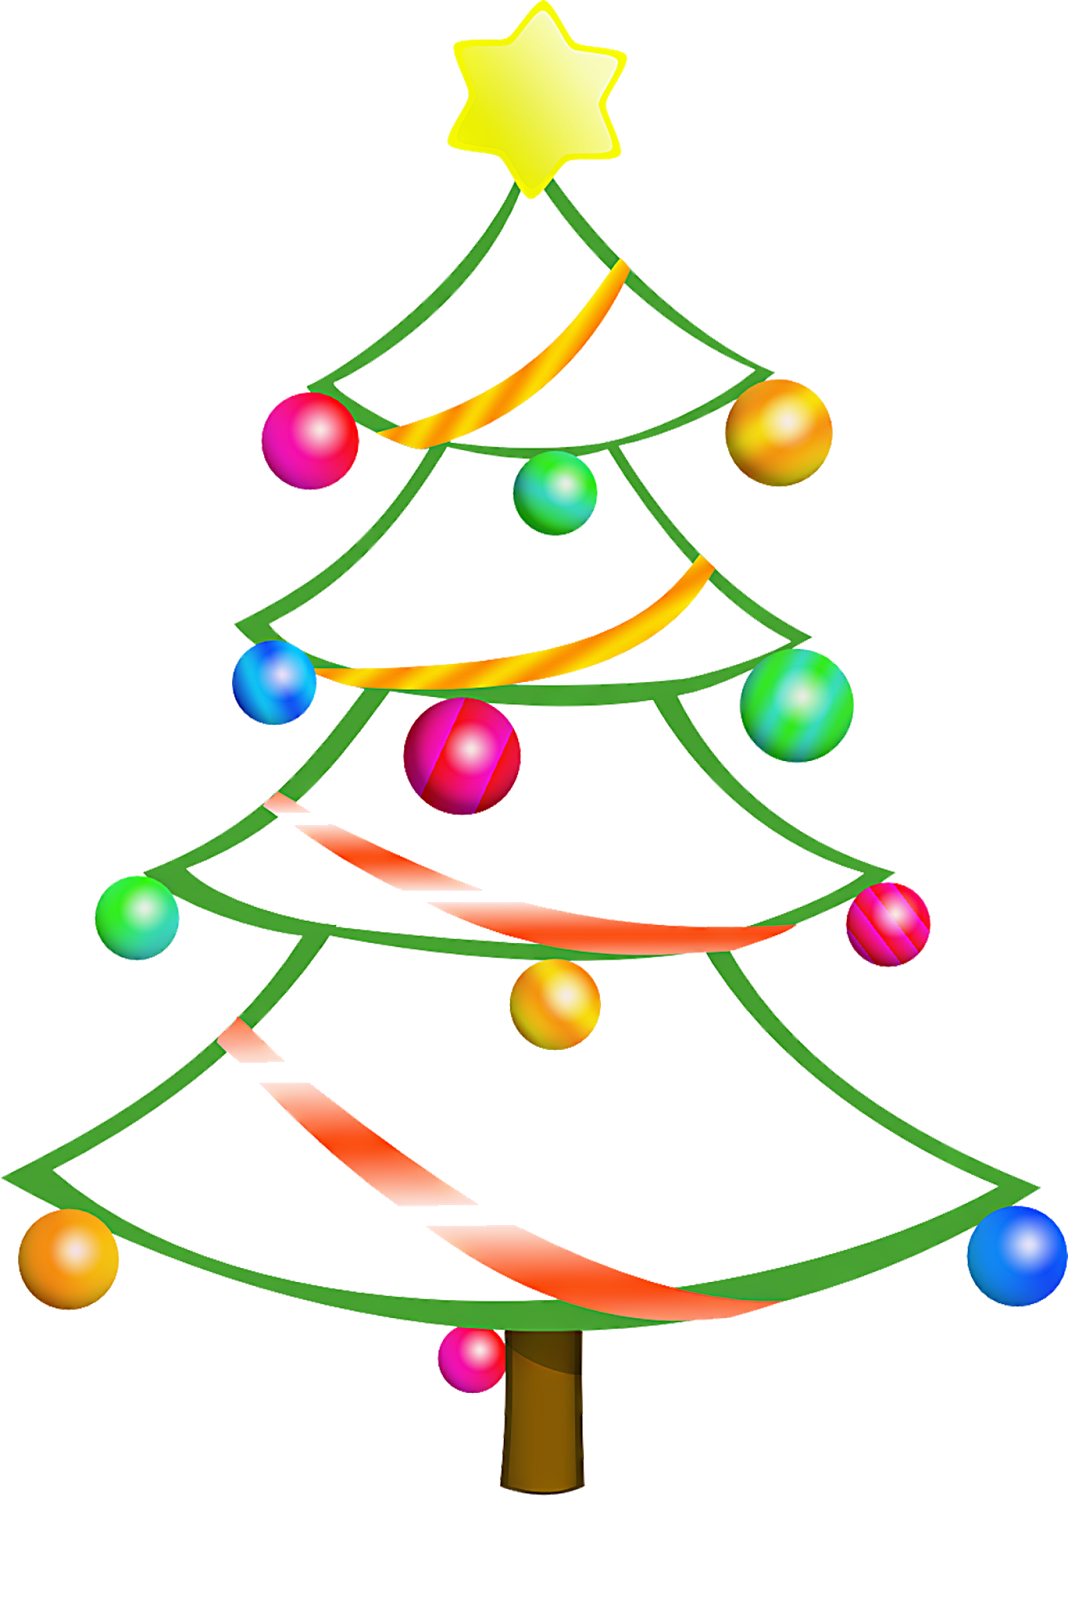 Free christmas clipart and new years image free download Free Merry Christmas And Happy New Year Clipart, Download Free Clip ... free download